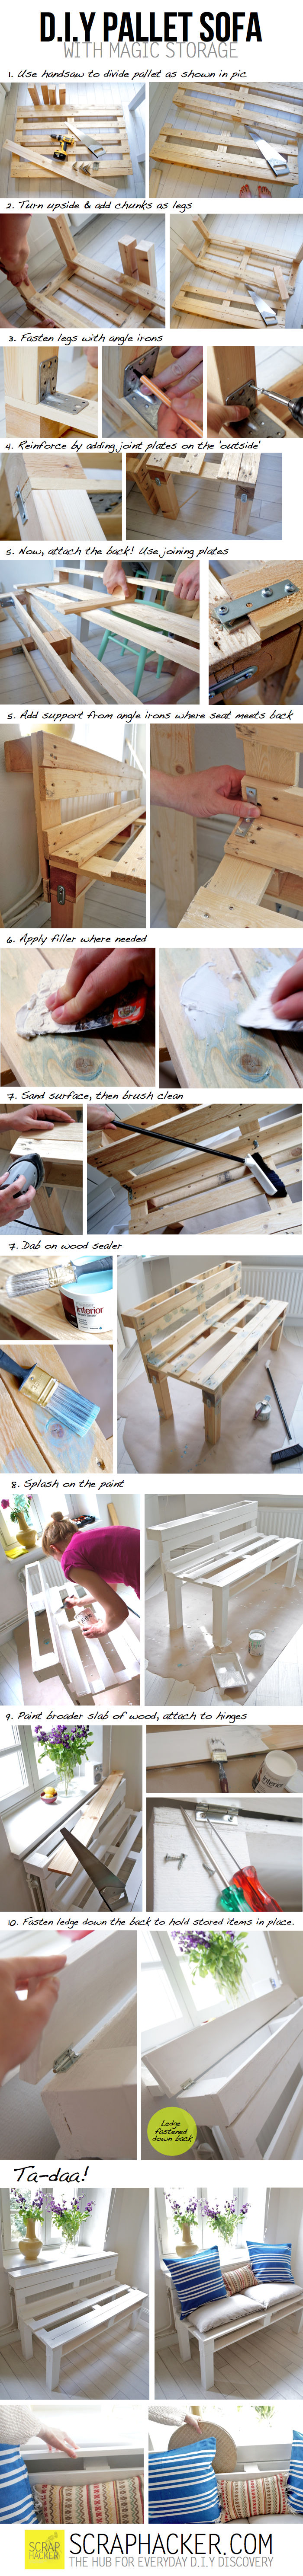 Diy Storage Pallet Sofa Pictures, Photos, and Images for ...